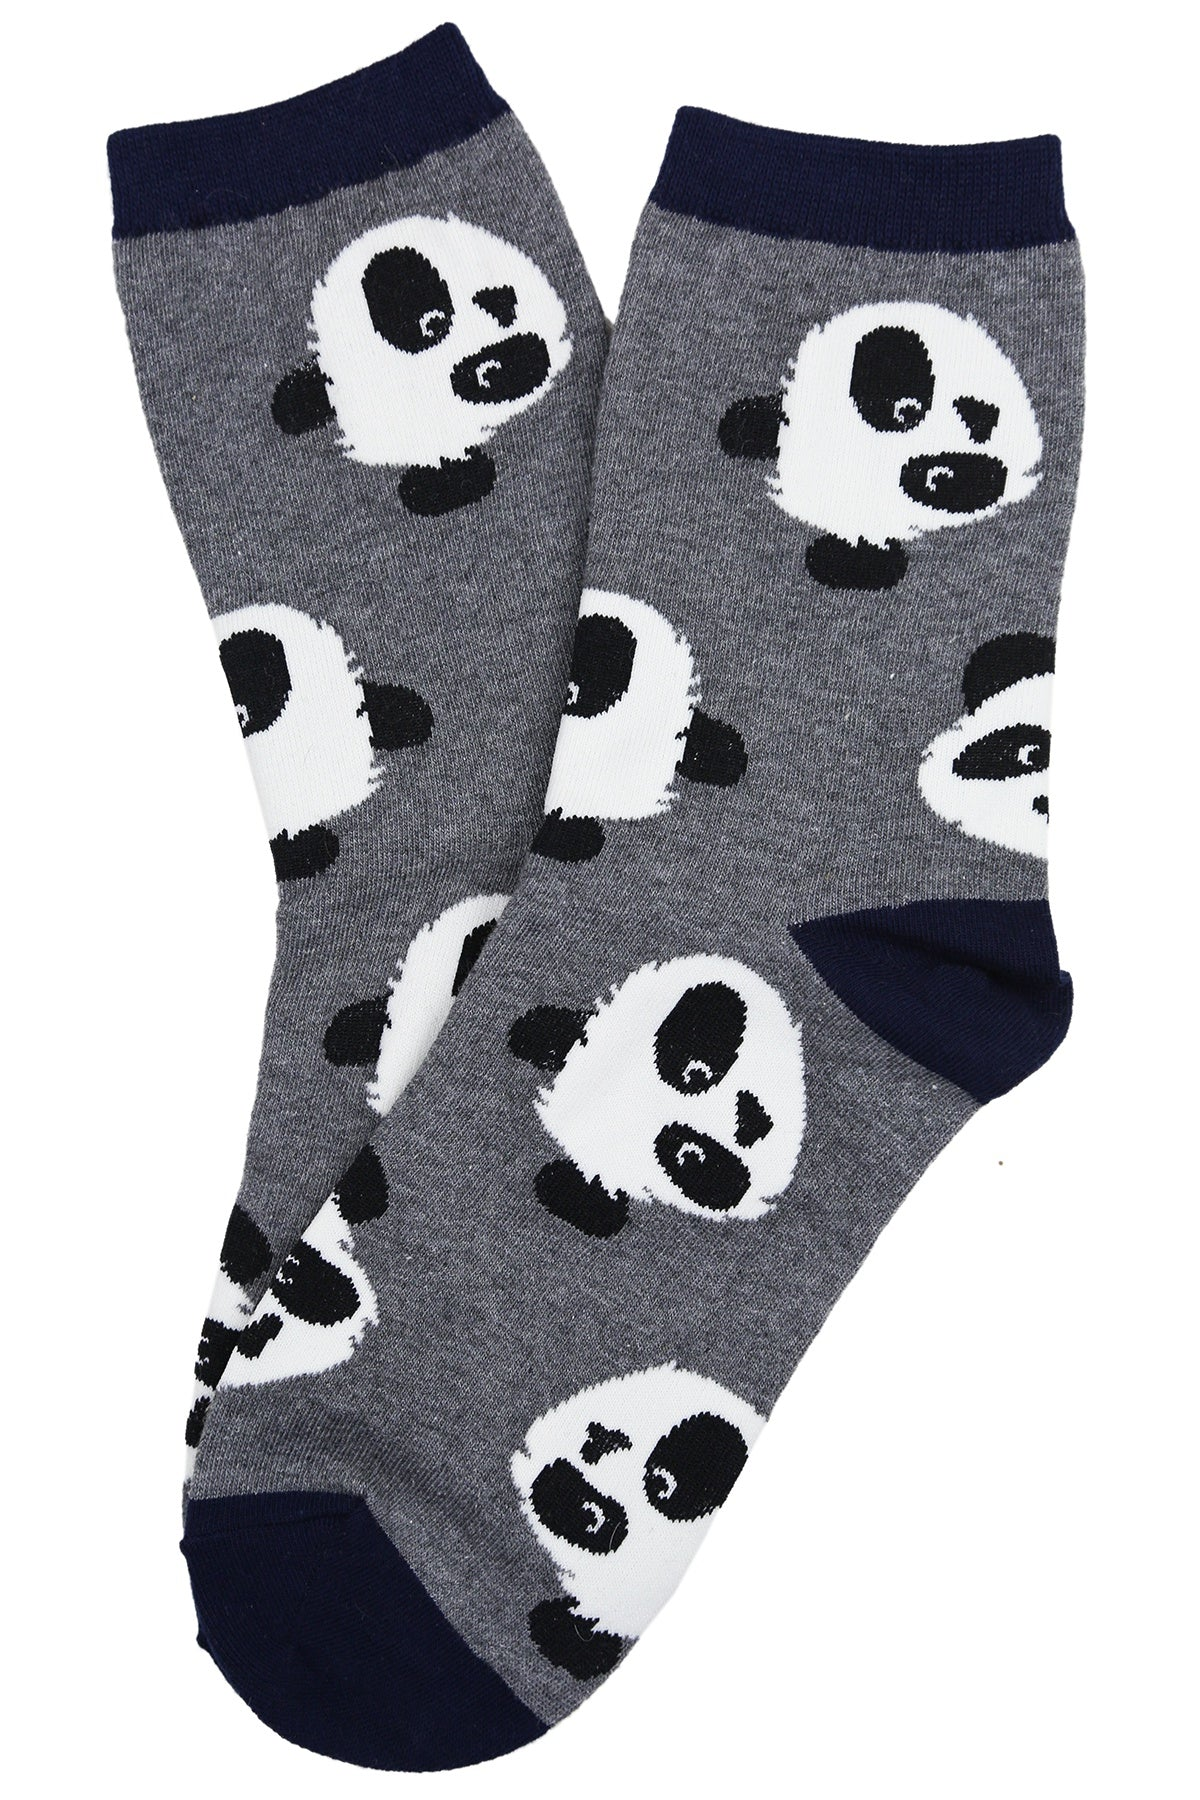 Penny the Panda Cotton Socks Grey